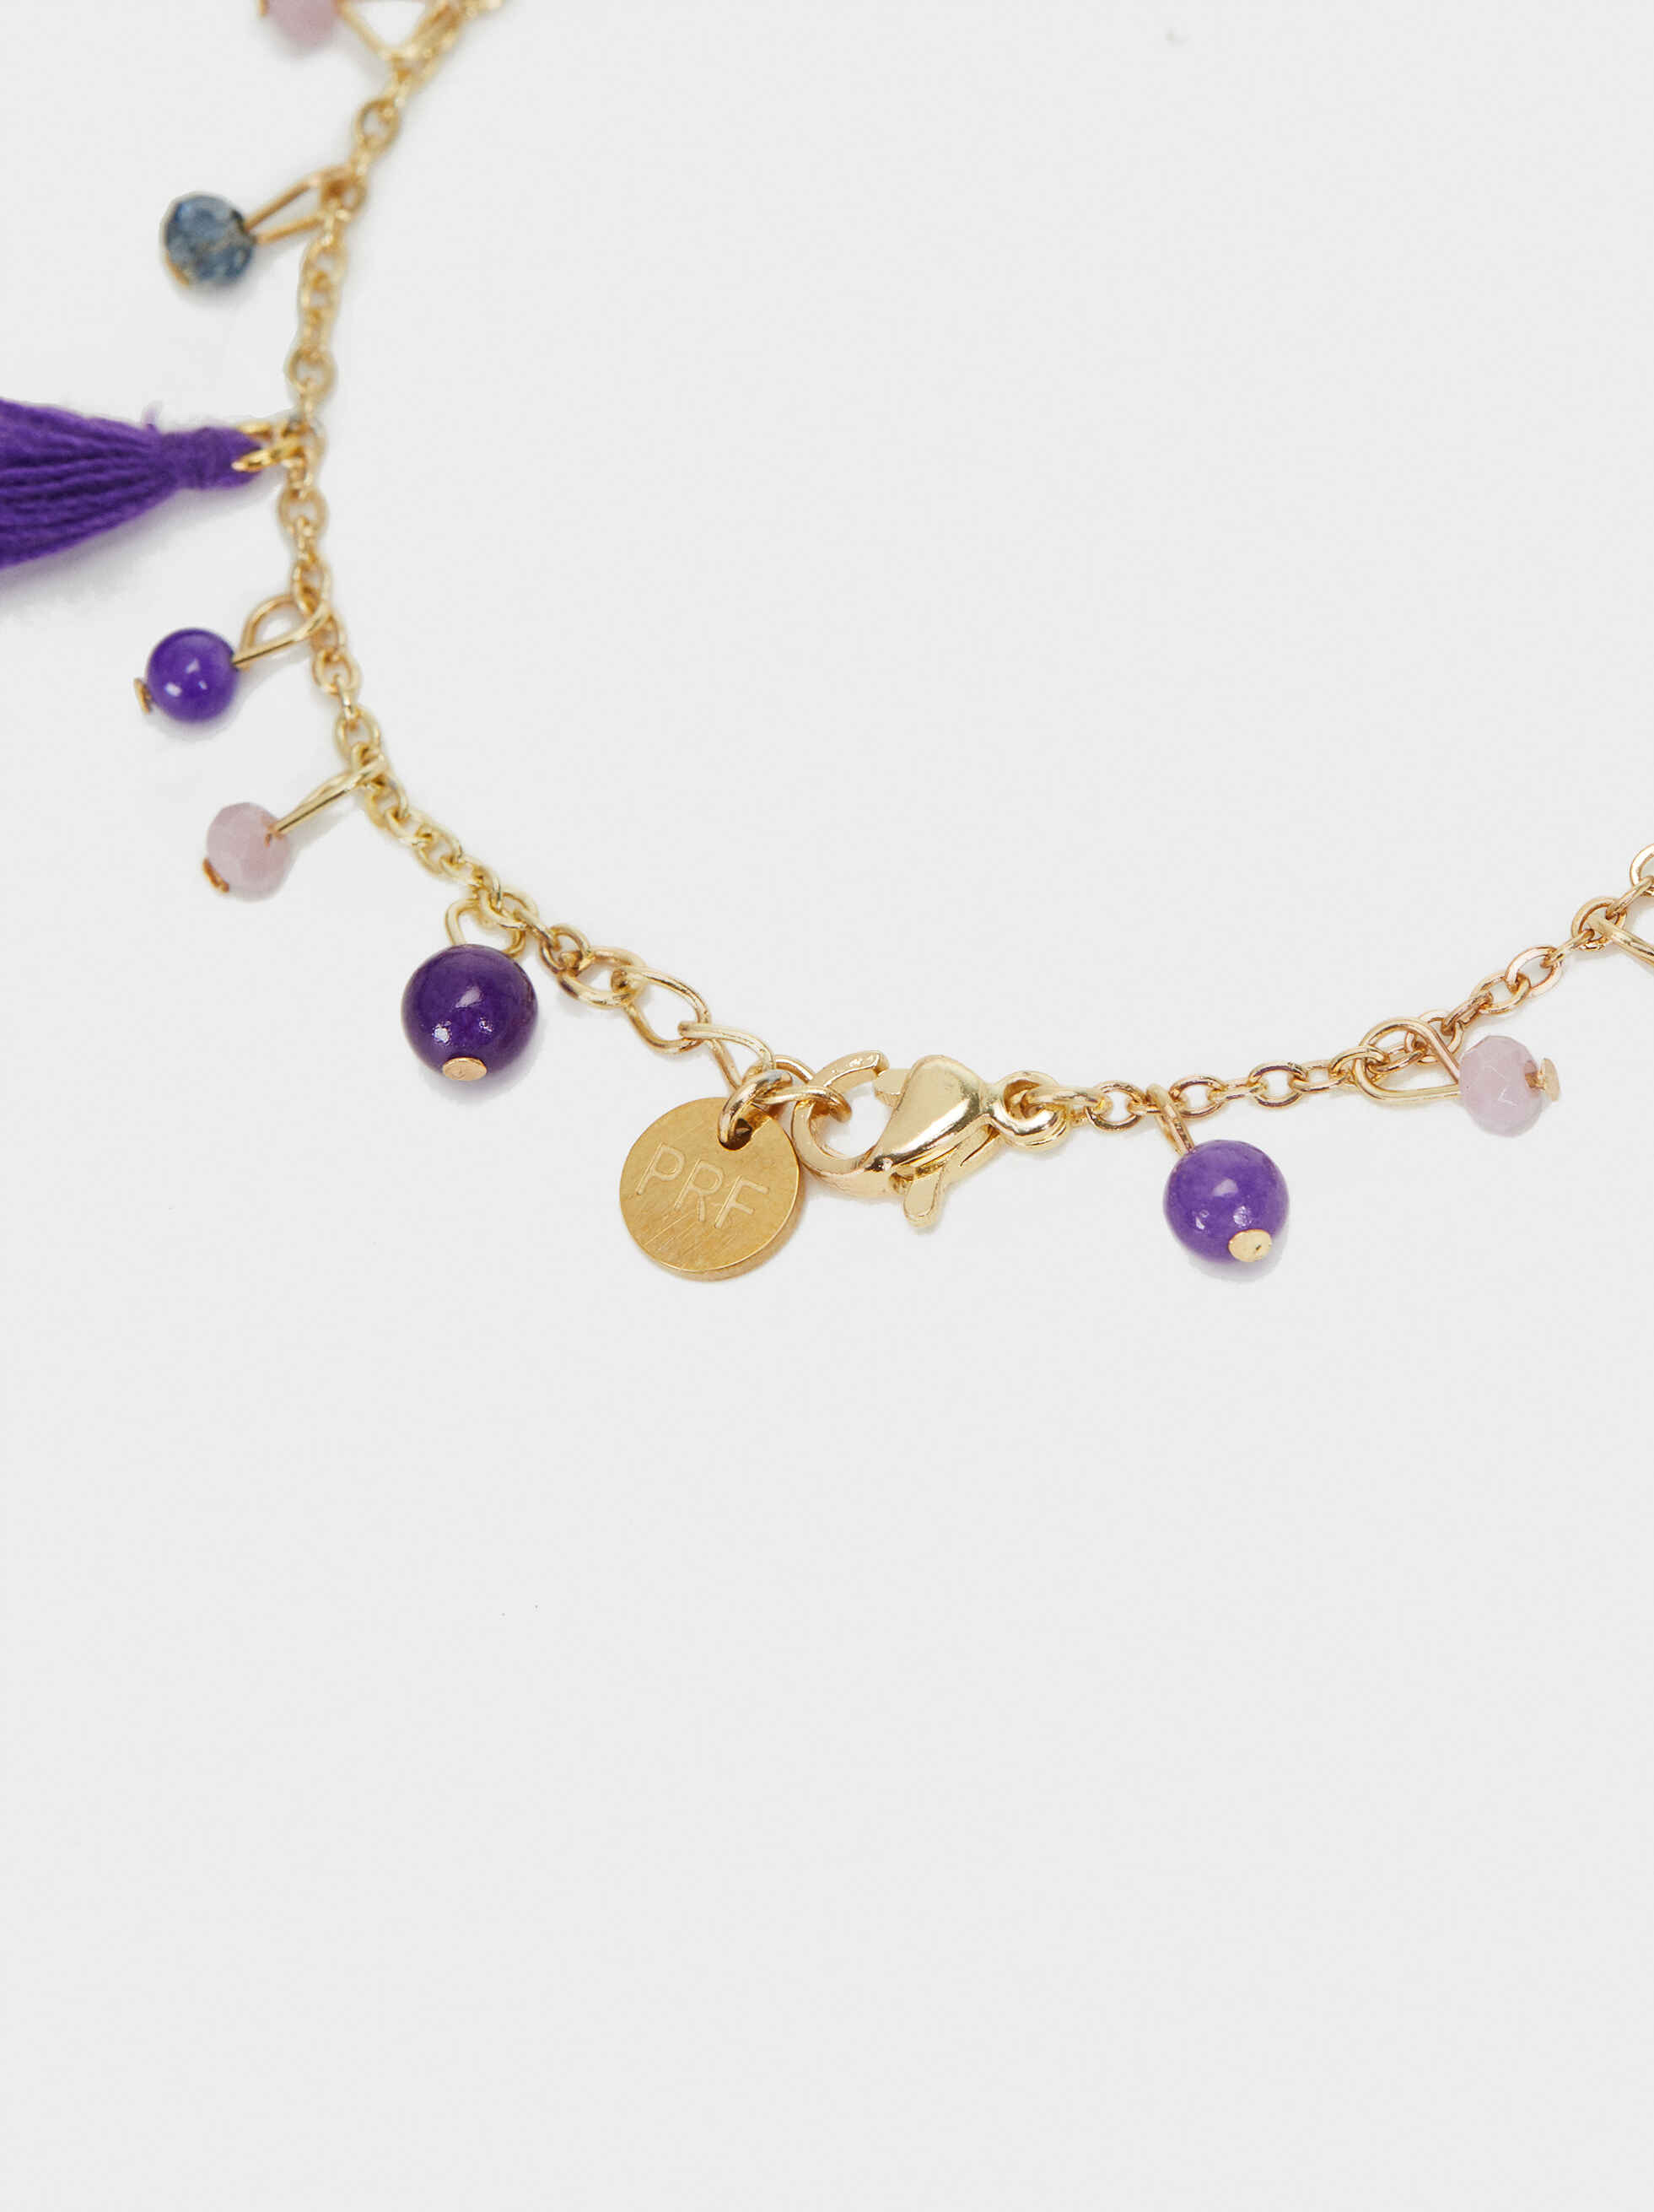 Gold Adjustable Bracelet With Stones And Beads, Purple, hi-res